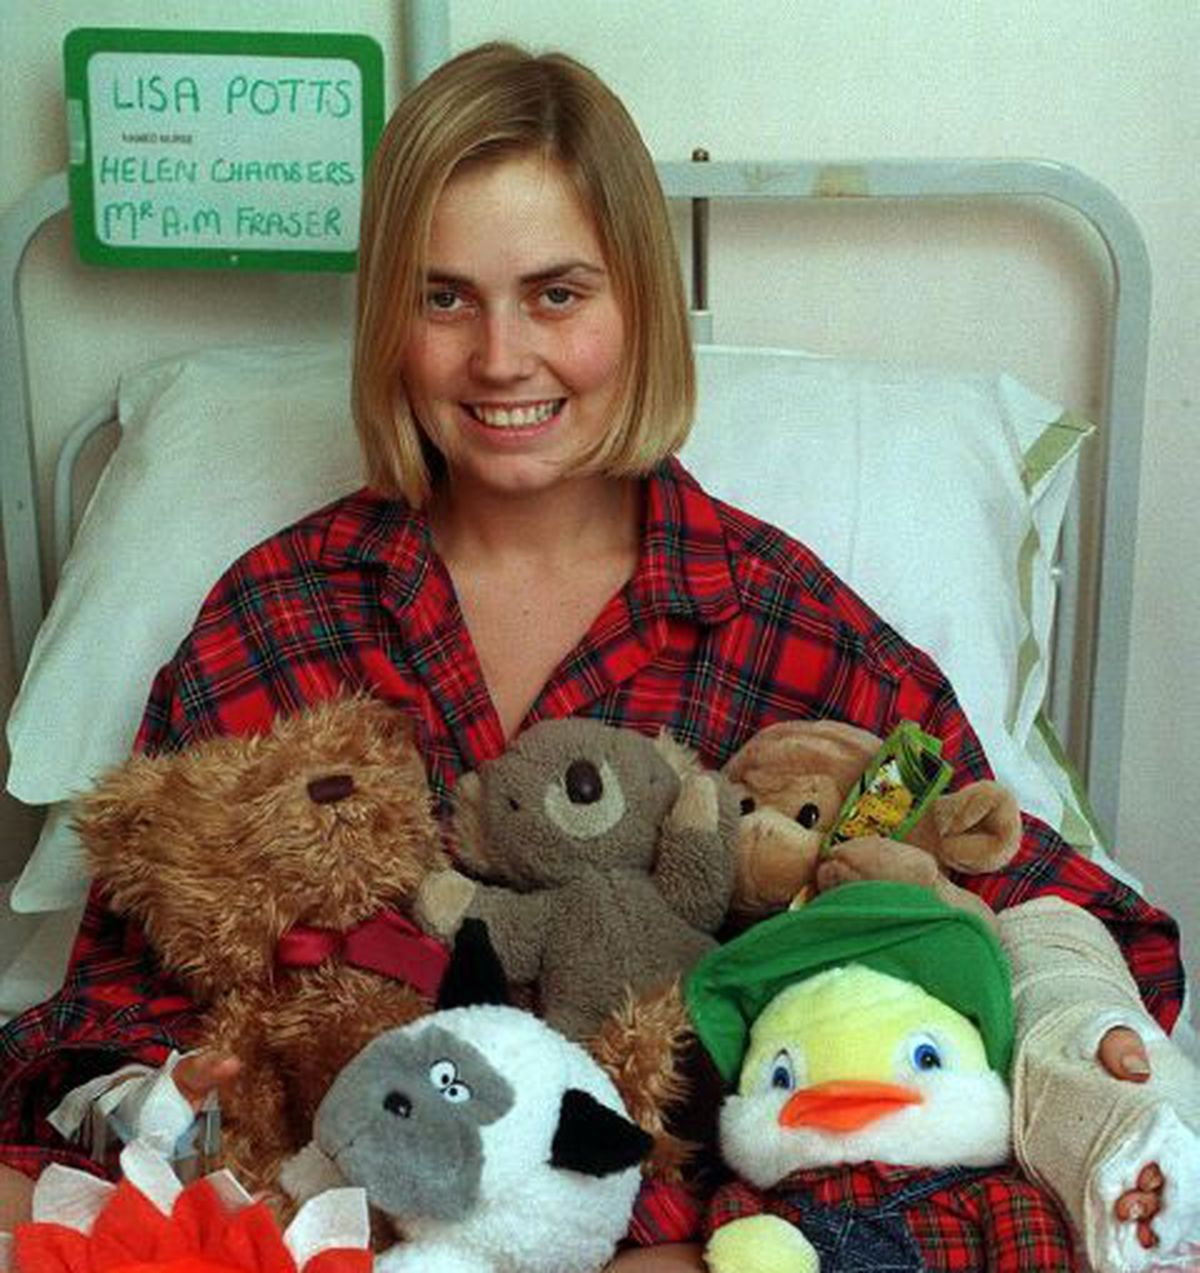 Lisa recovering in hospital with some of the gifts donated by well-wishers